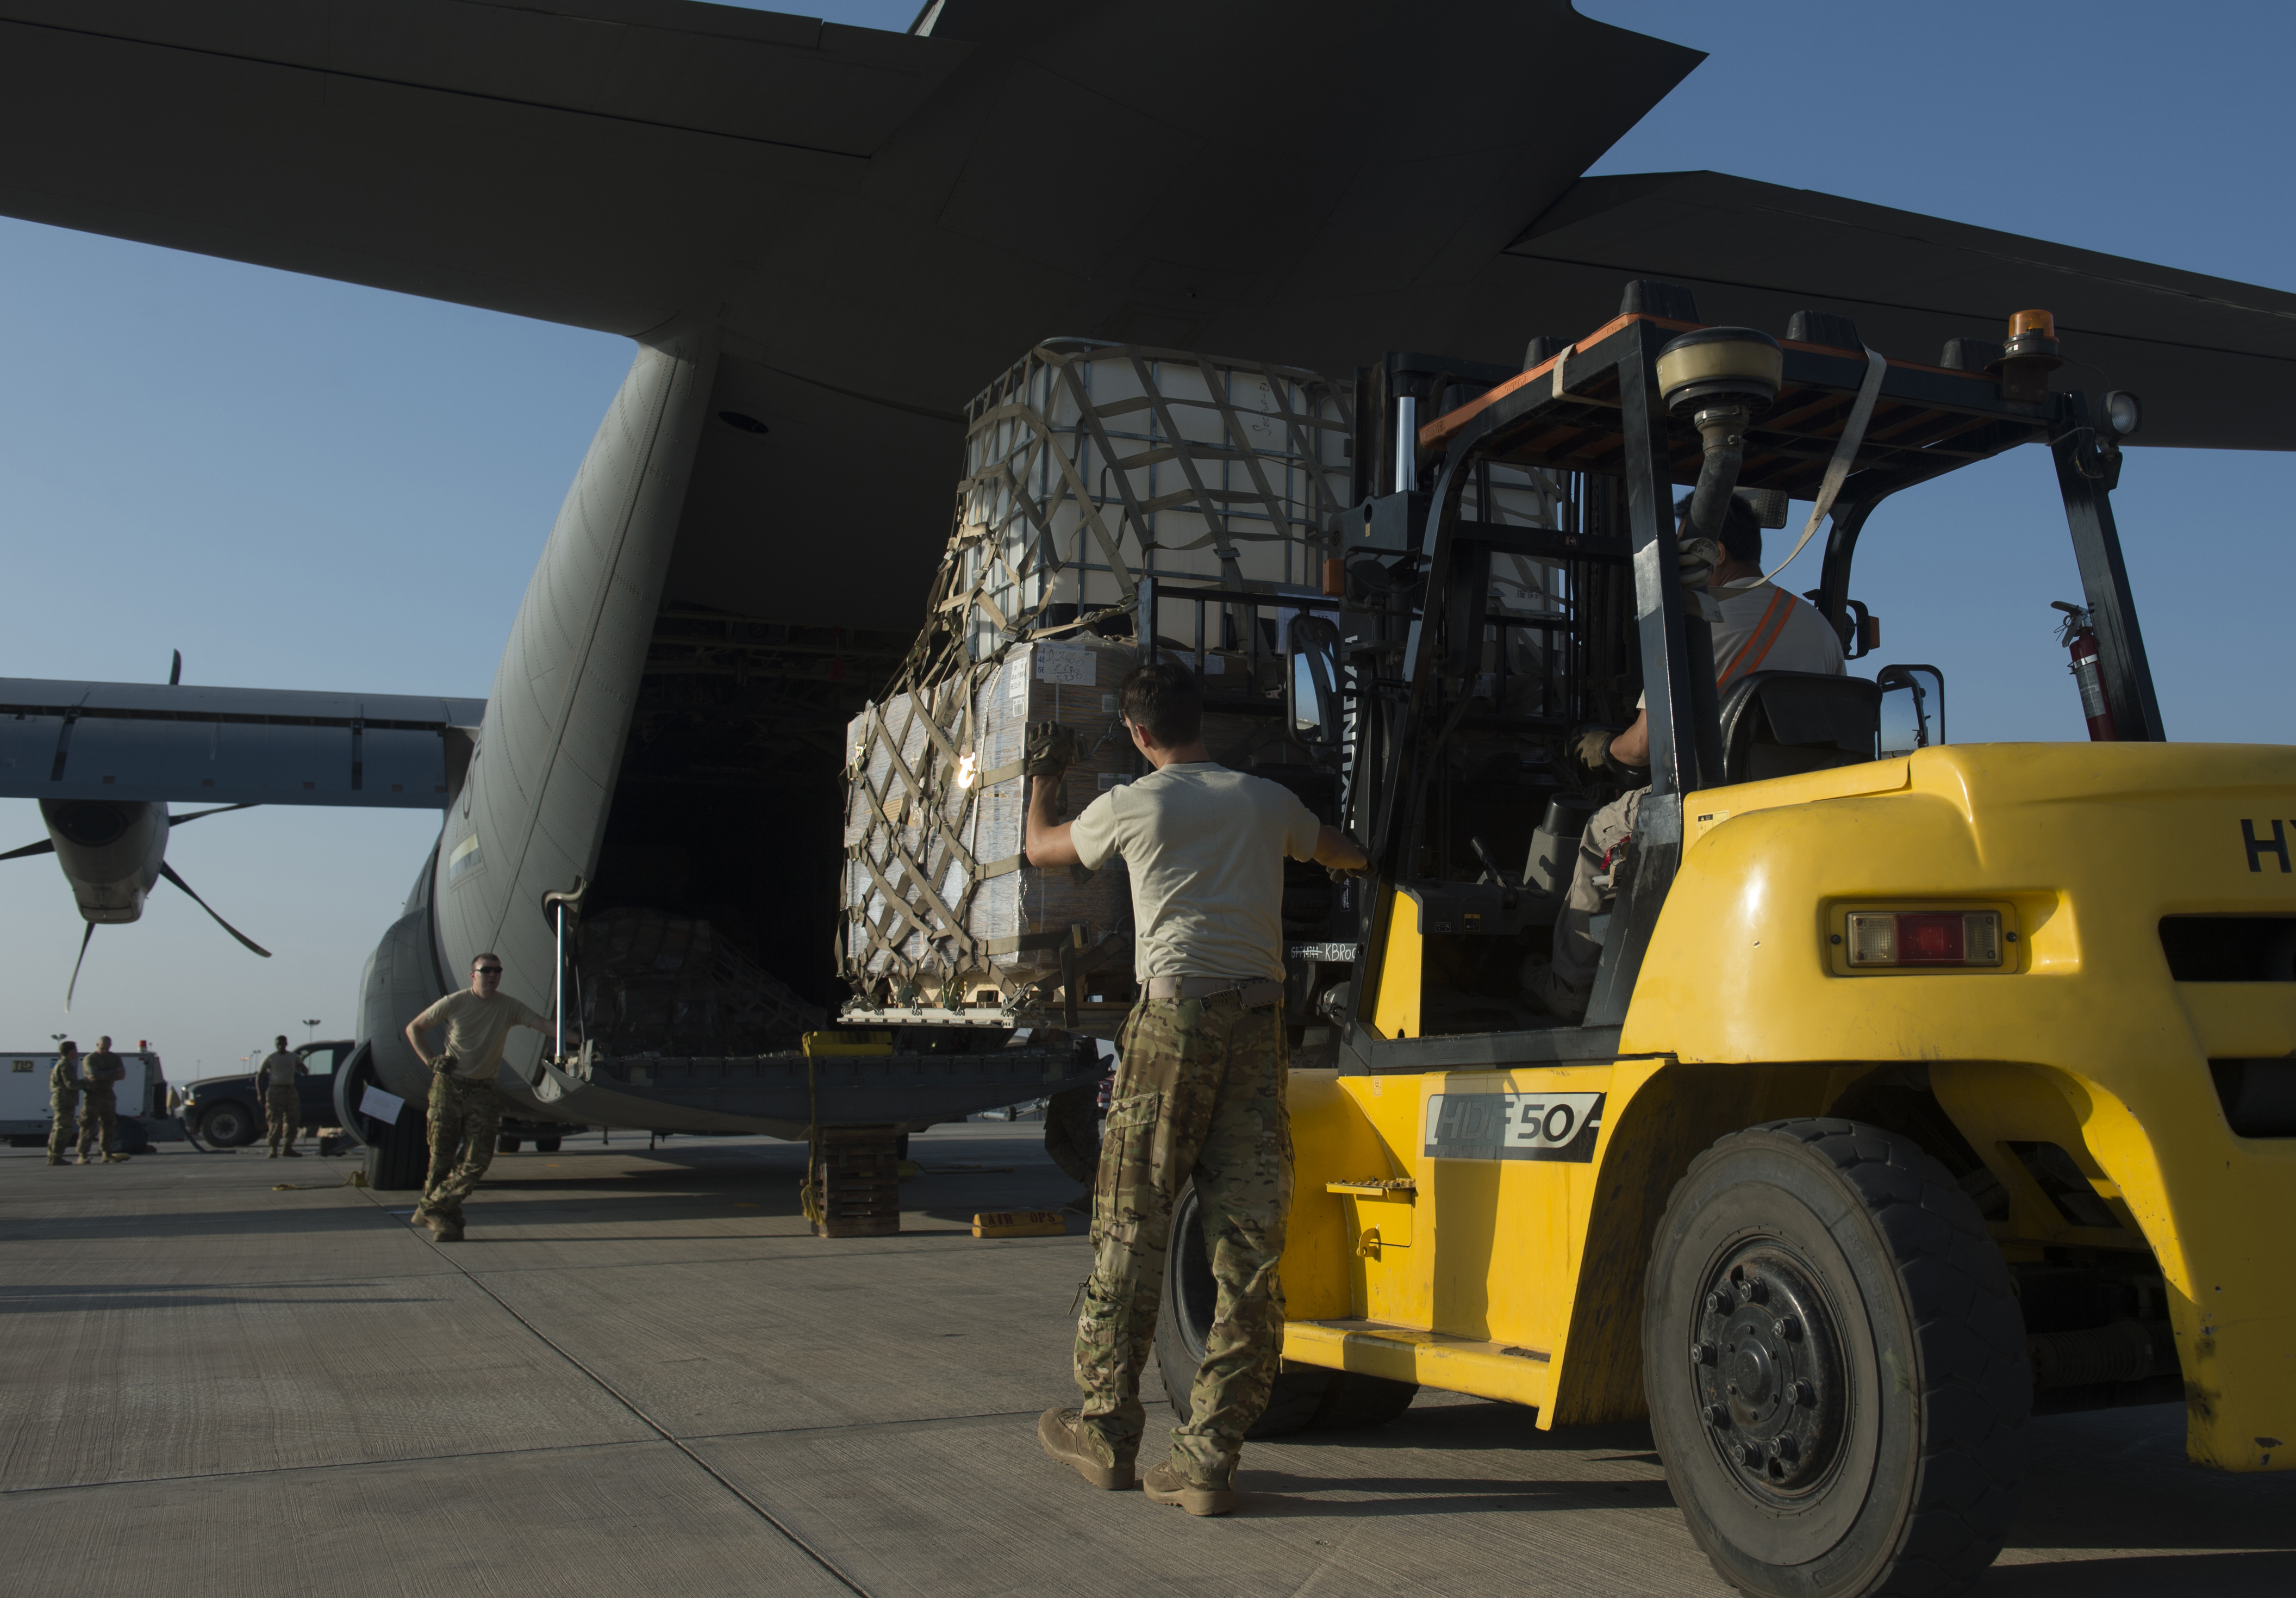 Senior Airman Zachary McGhee, 75th Expeditionary Airlift Squadron loadmaster, directs a forklift behind a C-130J Super Hercules Nov. 24, 2015, at Camp Lemonnier, Djibouti. The shipment, which consisted of a Humvee and equipment, is one of several coordinated shipments between Combined Joint Task Force-Horn of Africa's Joint Logistics Operations Center and the 75th EAS. (U.S. Air Force photo by Senior Airman Peter Thompson)